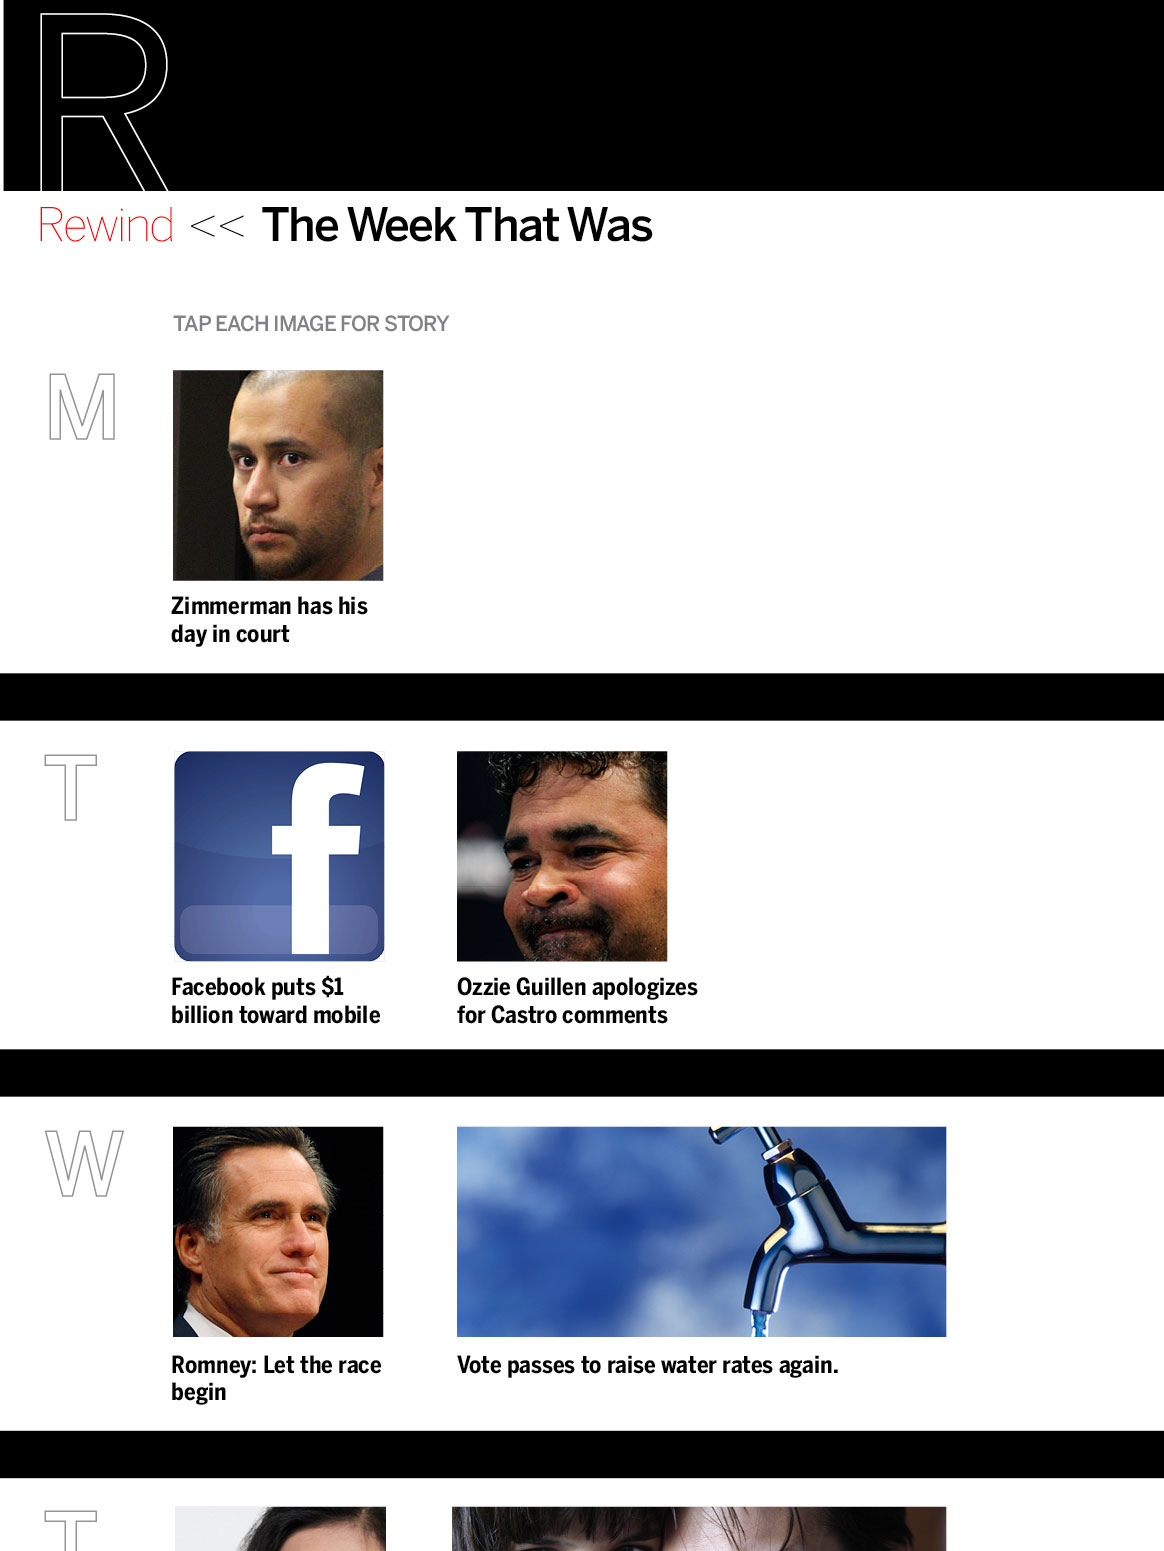 iPad Sunday week in review